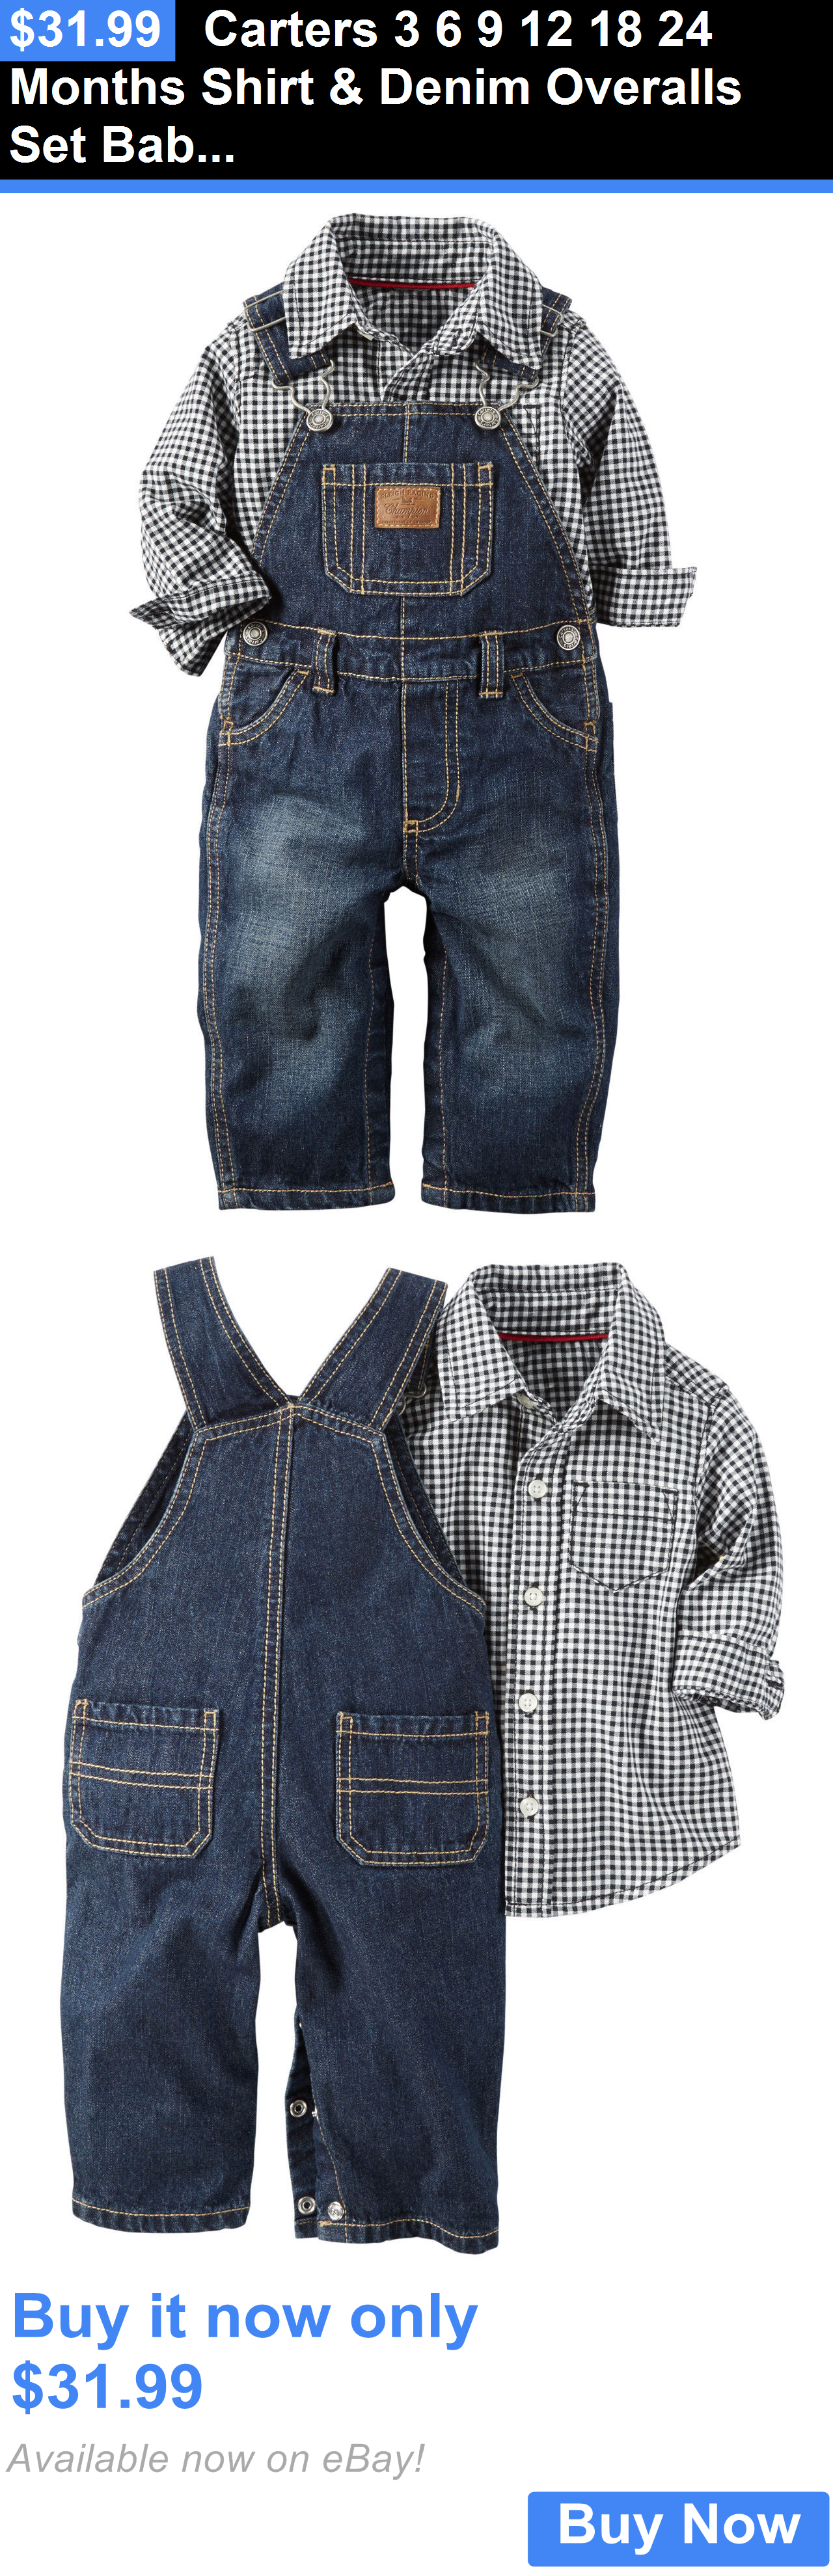 Baby Boys Clothing And Accessories Carters 3 6 9 12 18 24 Months